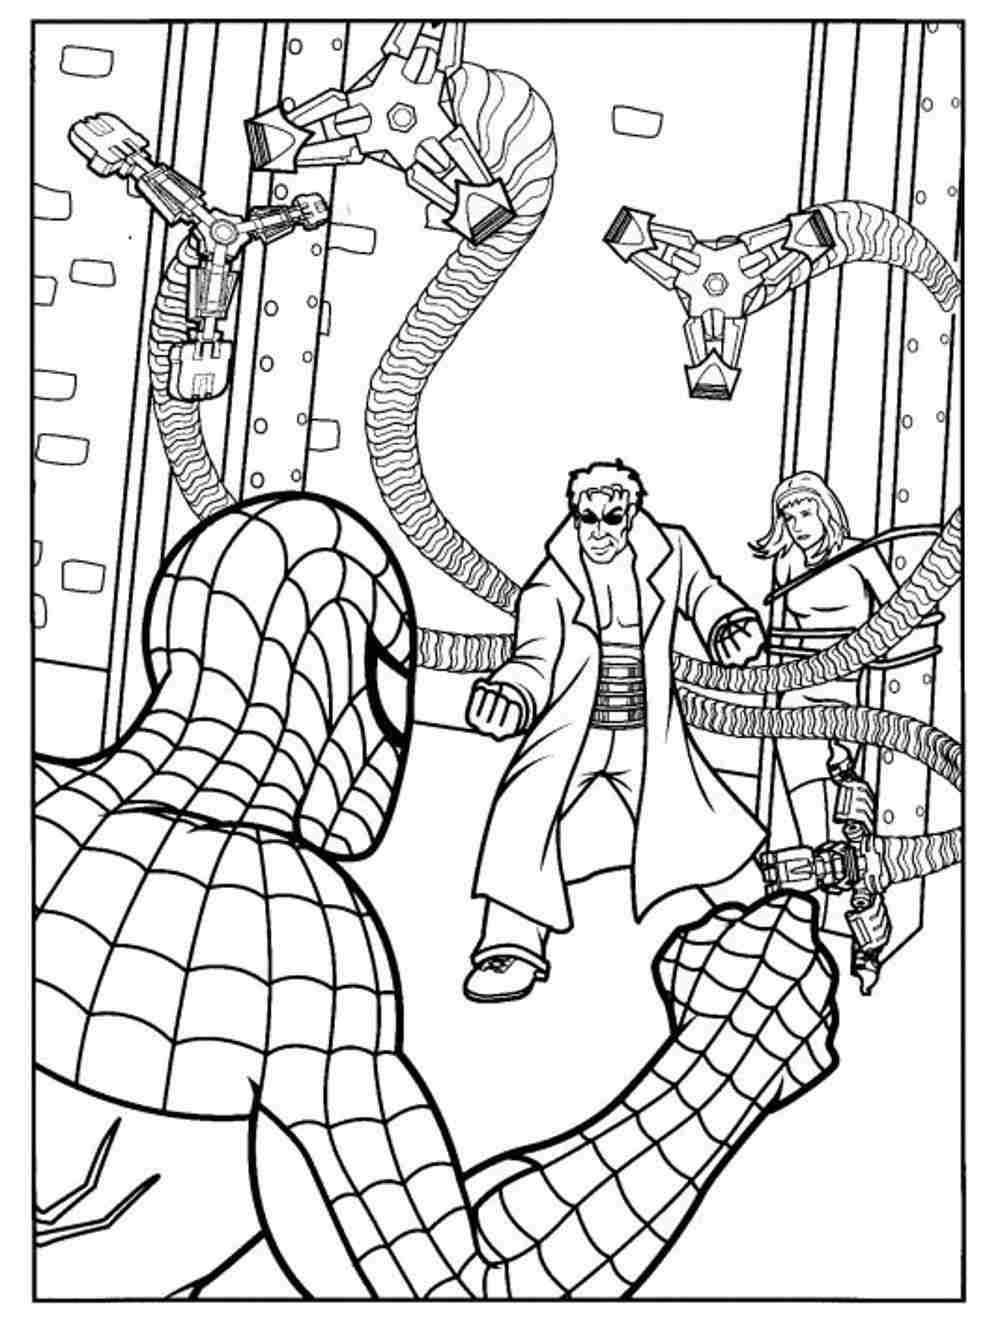 spiderman coloring pages printables free printable spiderman coloring pages for kids pages coloring printables spiderman